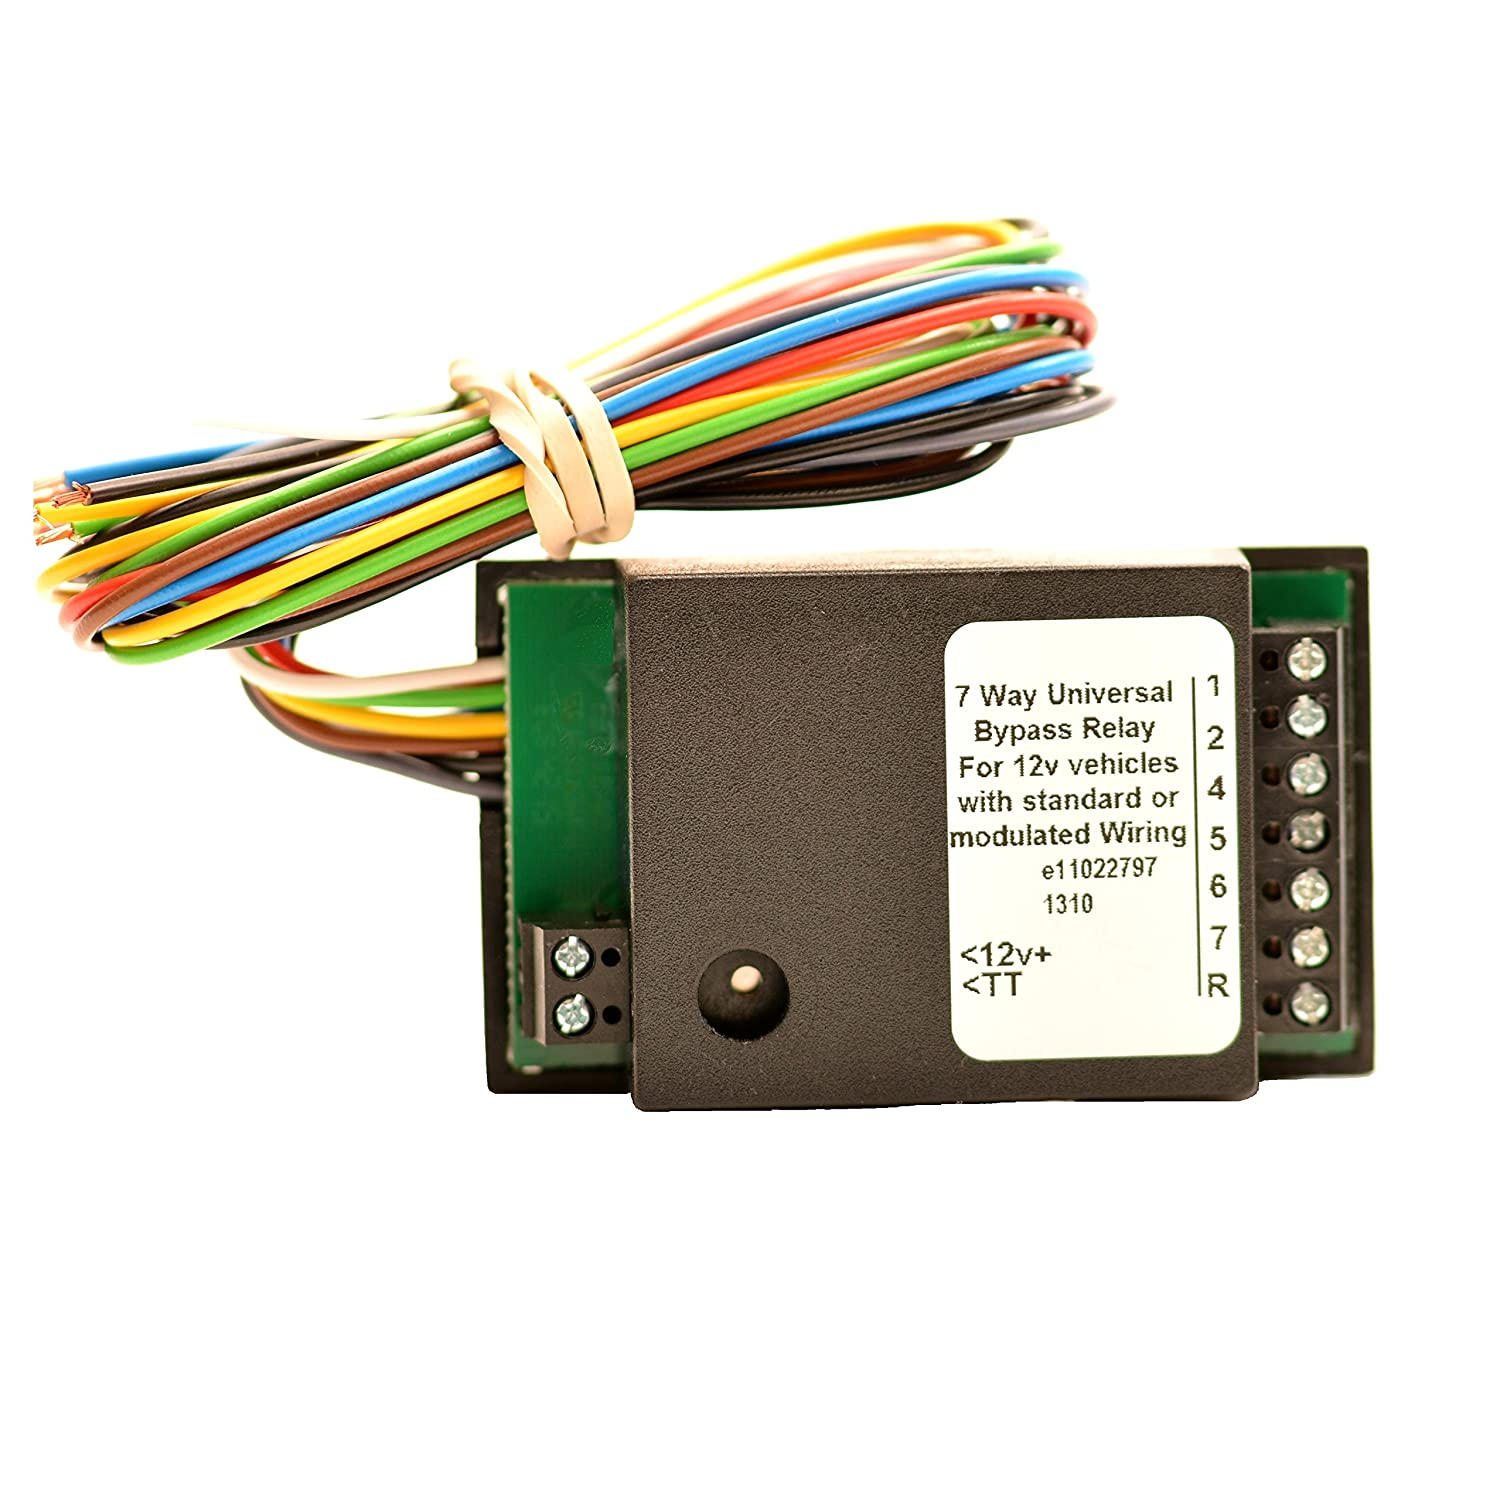 7 Way Bypass Relay Bypass Towing Relay 12N Bypass Relay - Relay Switch Halfords